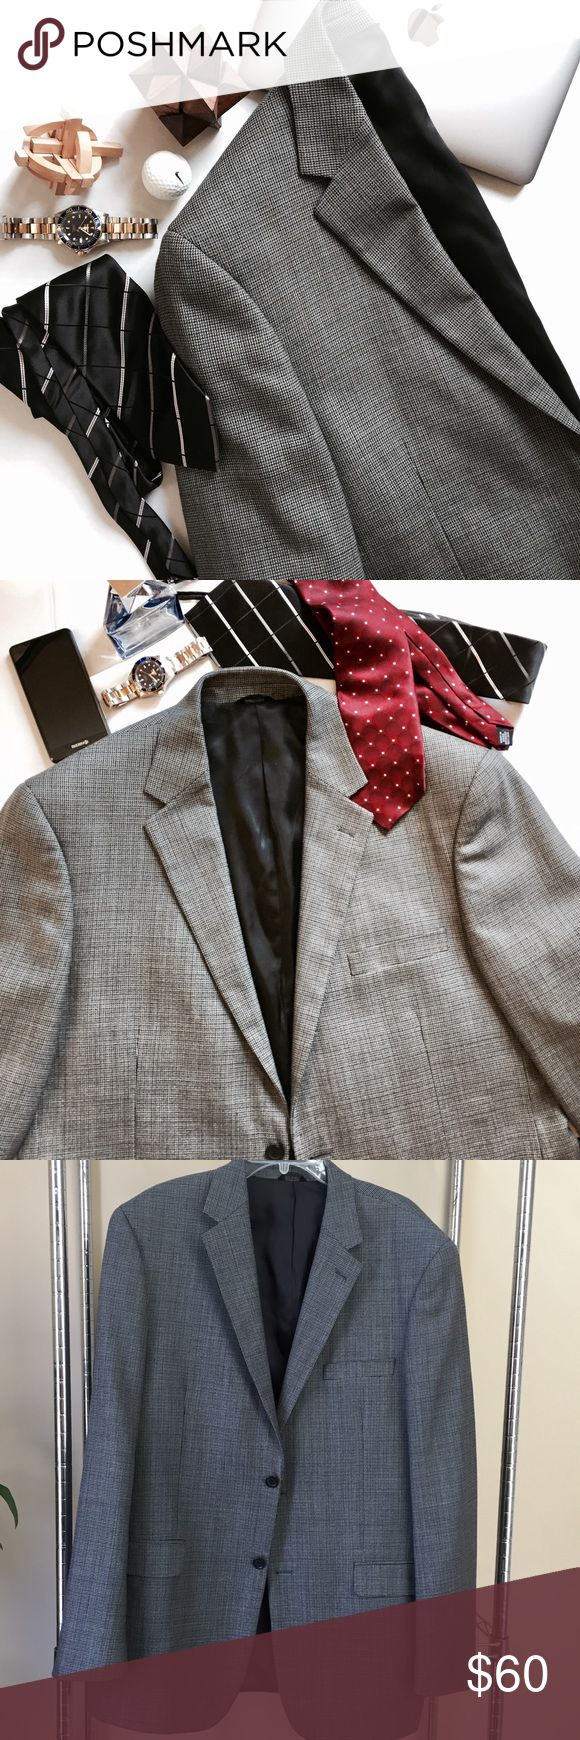 Andrew Fezza  Men's Wool Blazer Gray tweed wool blazer, lined, absolutely beautiful, size 44 Long, can pair with dress shirt and tie, as part of a suit, or dress it down for a casual look, has been well taken care of, only worn a couple of times. Andrew Fezza Jackets & Coats Blazers